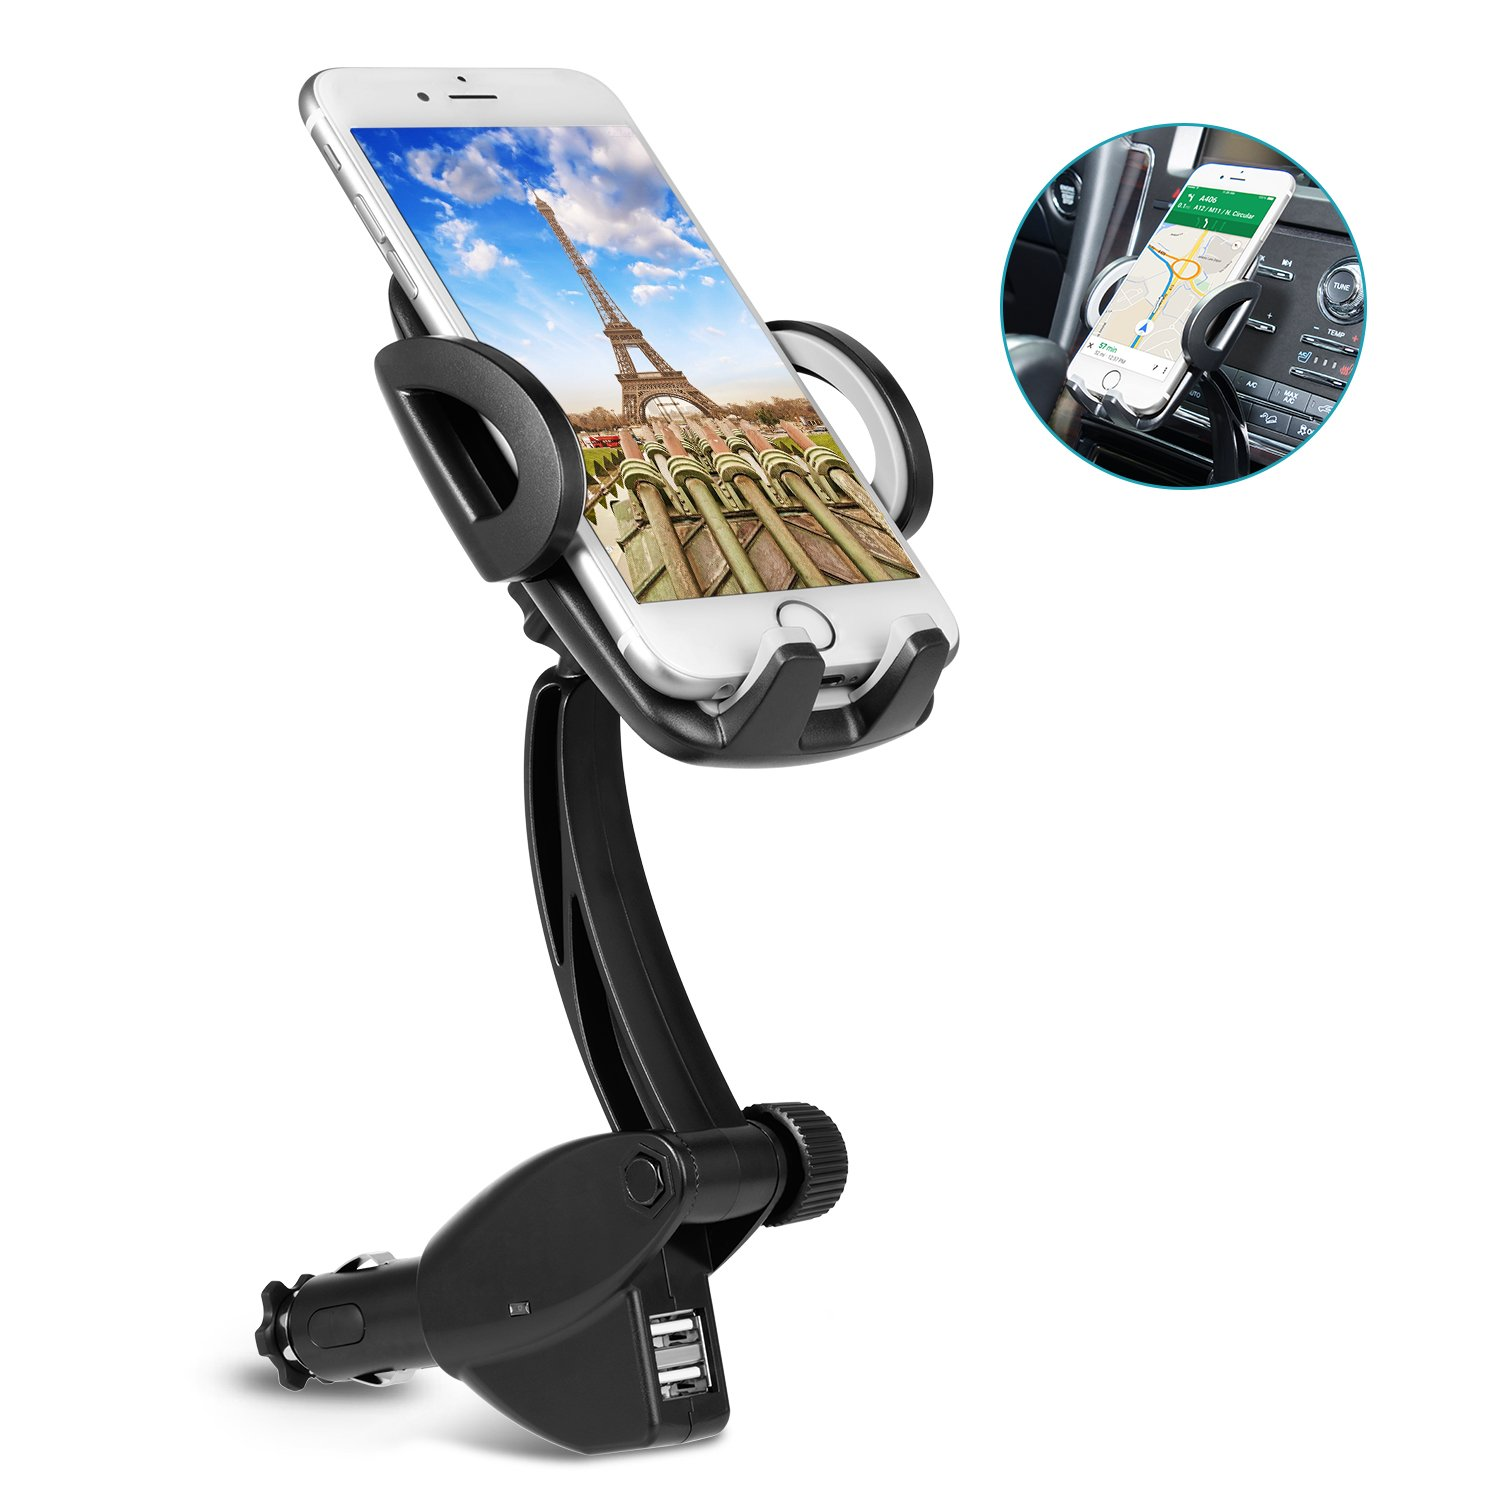 Car-accessory Cigarette Lighter Phone Holder Car Mount Charger with Dual USB Charging Ports for iPhone X 8 8 Plus 7 7 Plus 6s 5s, Samsung Galaxy S9 S8 S8 Plus S7 and More Smartphones